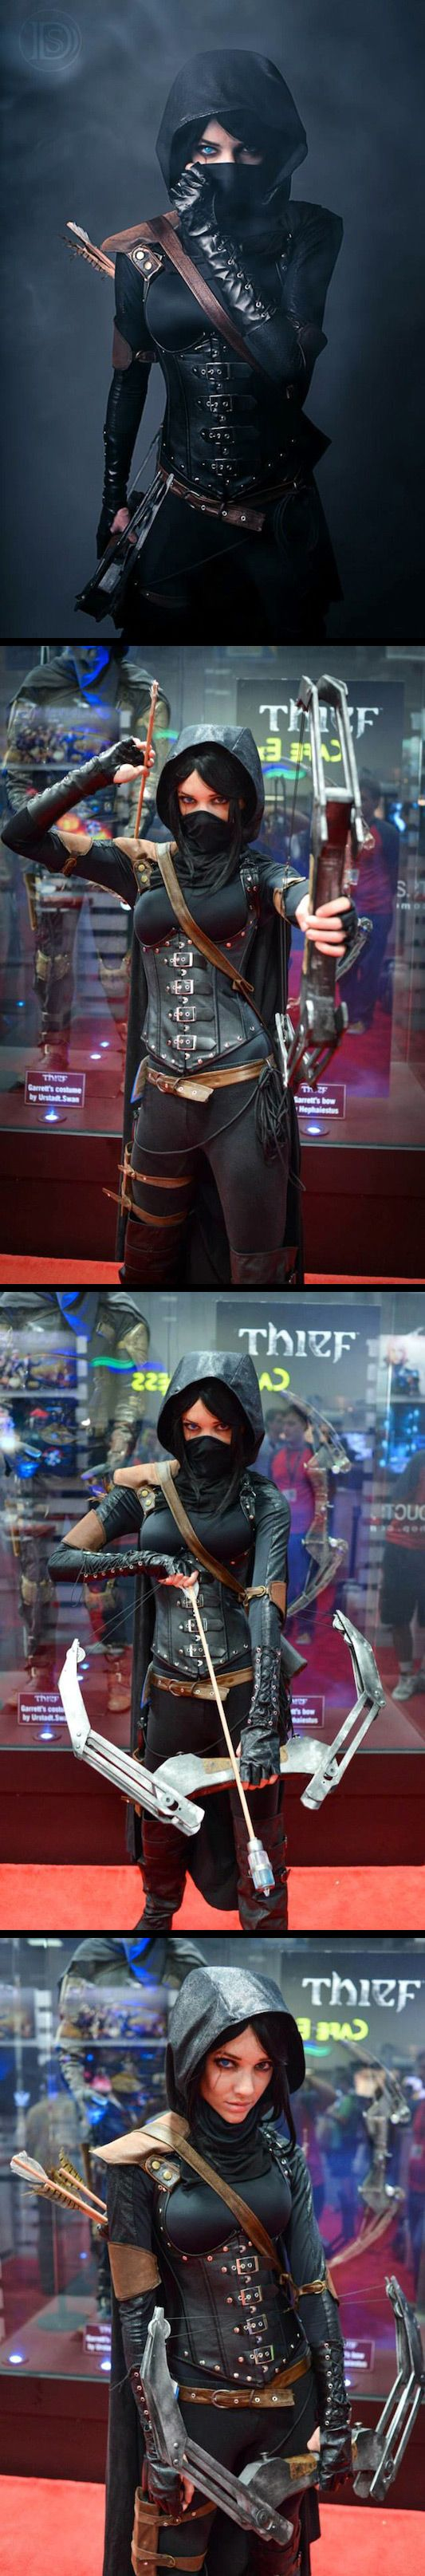 Fem Garrett - Thief 4 #cosplay by Lyz Brickley